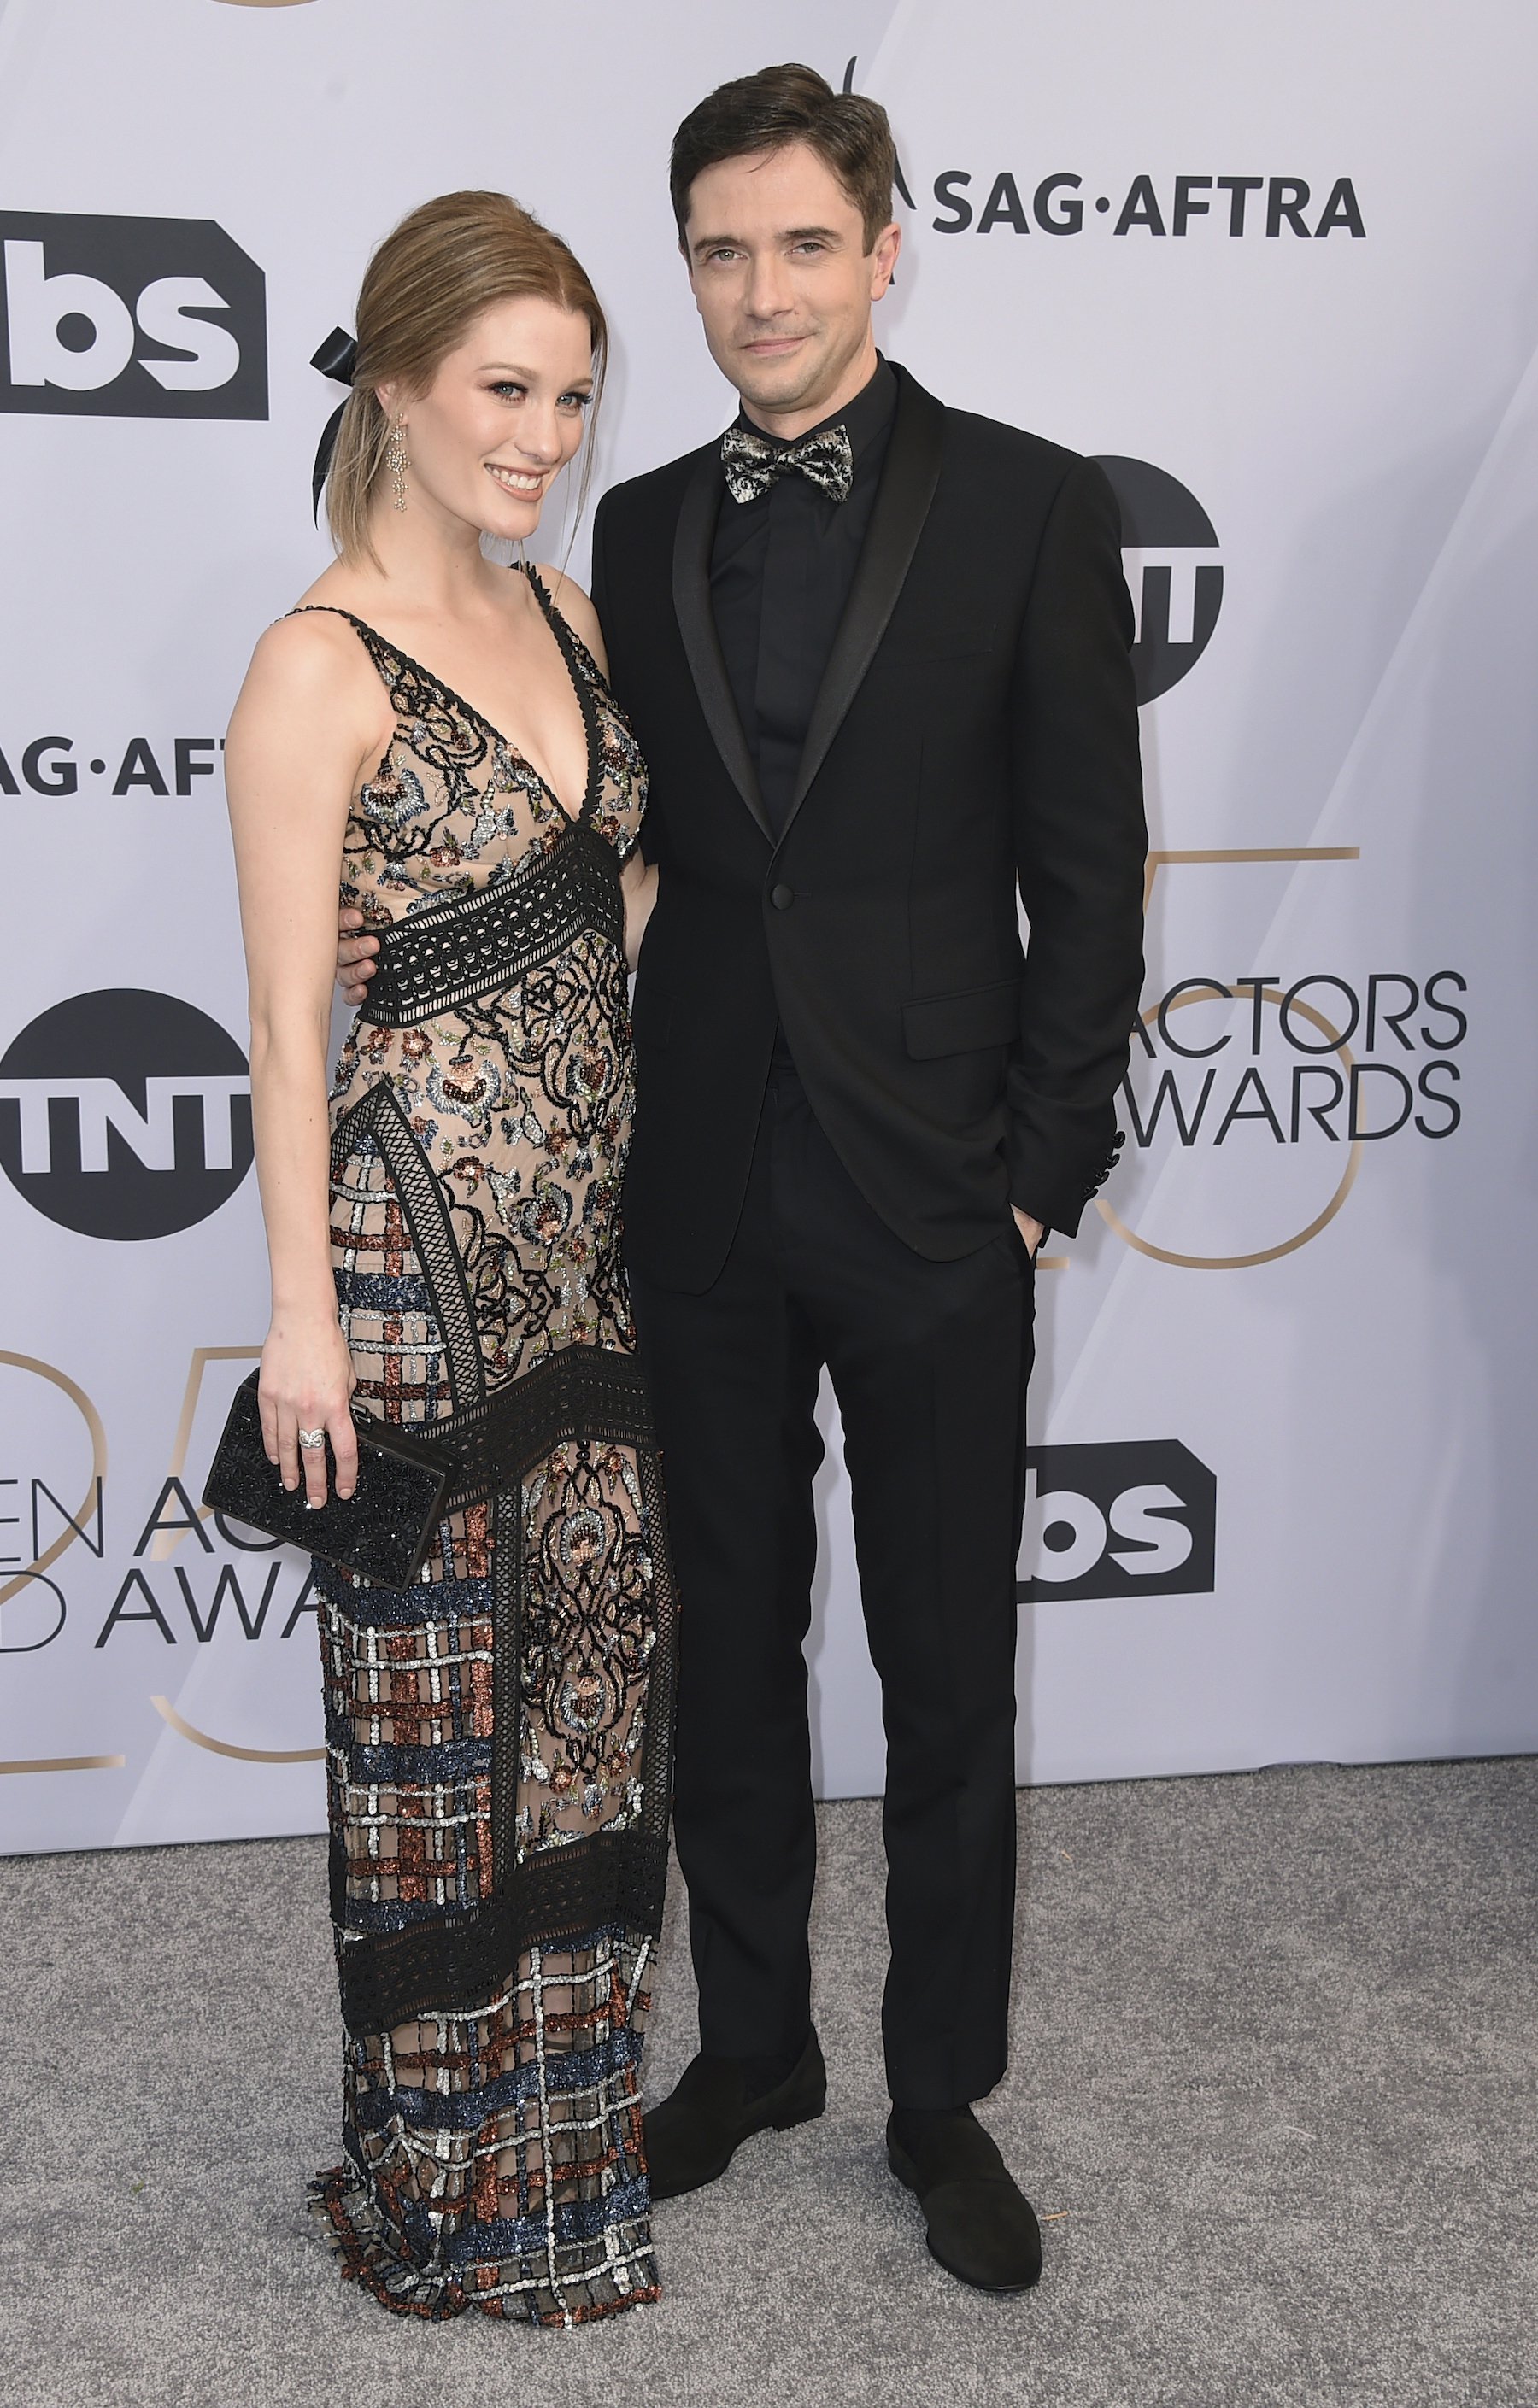 <div class='meta'><div class='origin-logo' data-origin='AP'></div><span class='caption-text' data-credit='Jordan Strauss/Invision/AP'>Ashley Hinshaw, left, and Topher Grace arrive at the 25th annual Screen Actors Guild Awards at the Shrine Auditorium & Expo Hall on Sunday, Jan. 27, 2019, in Los Angeles.</span></div>